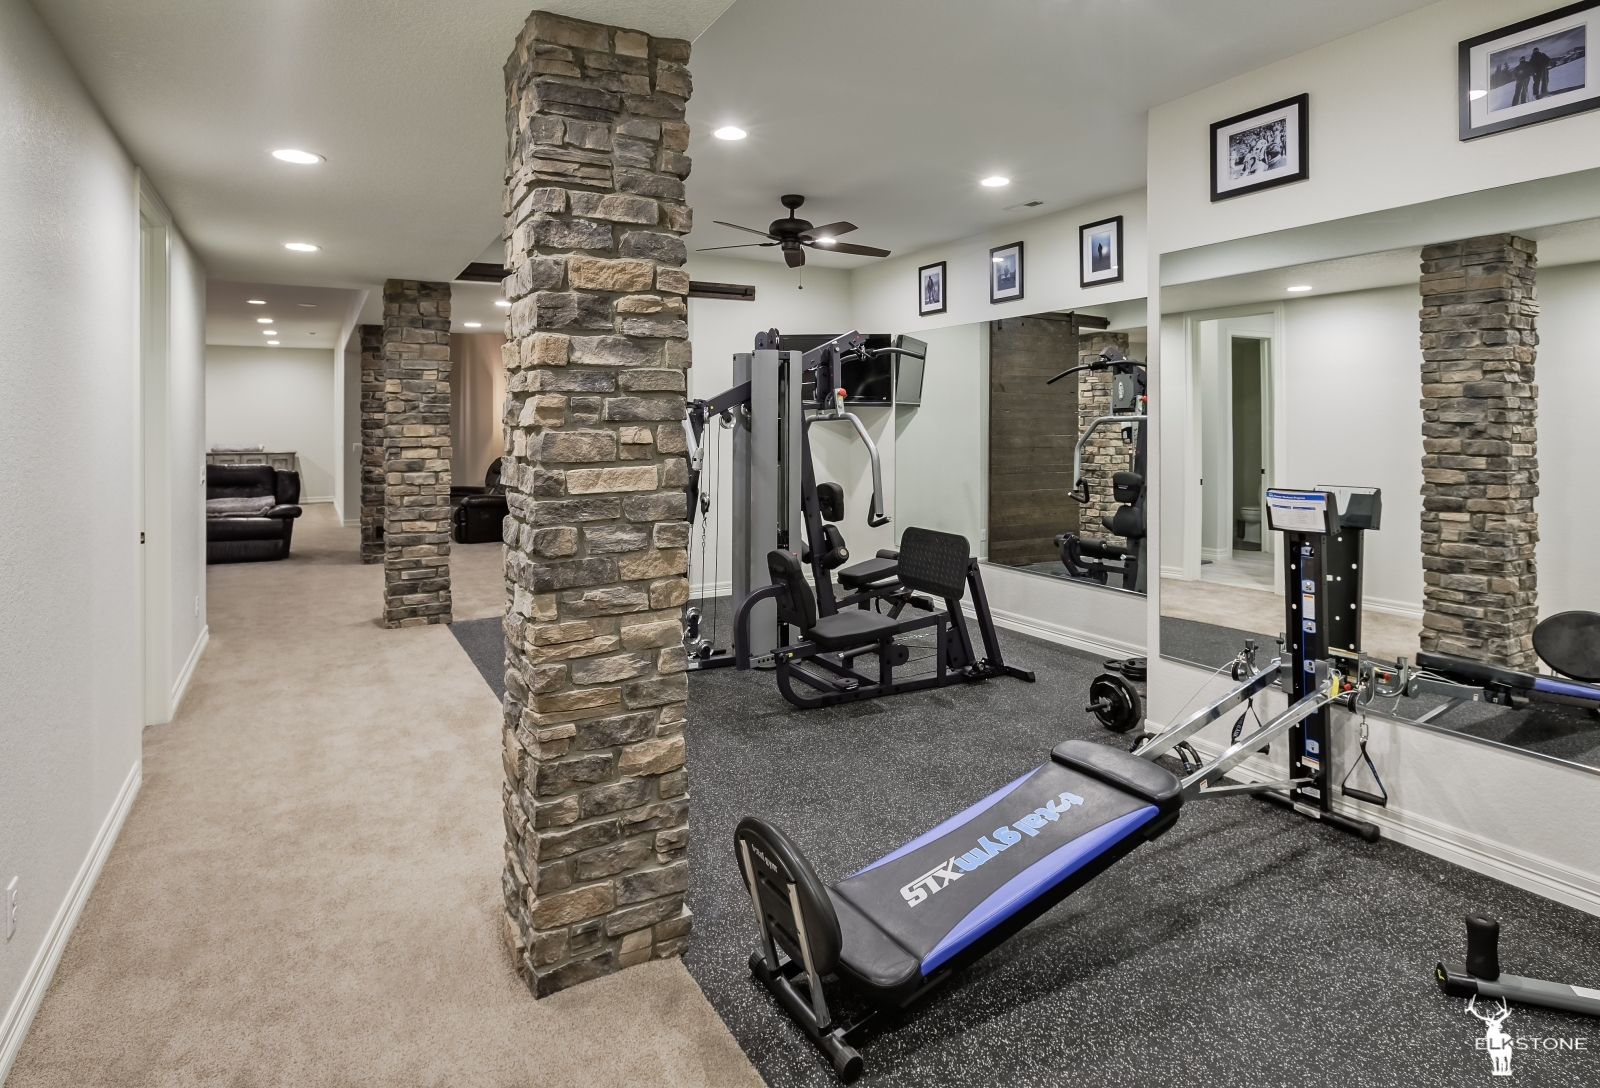 3044ElkCanyon-Gym-02